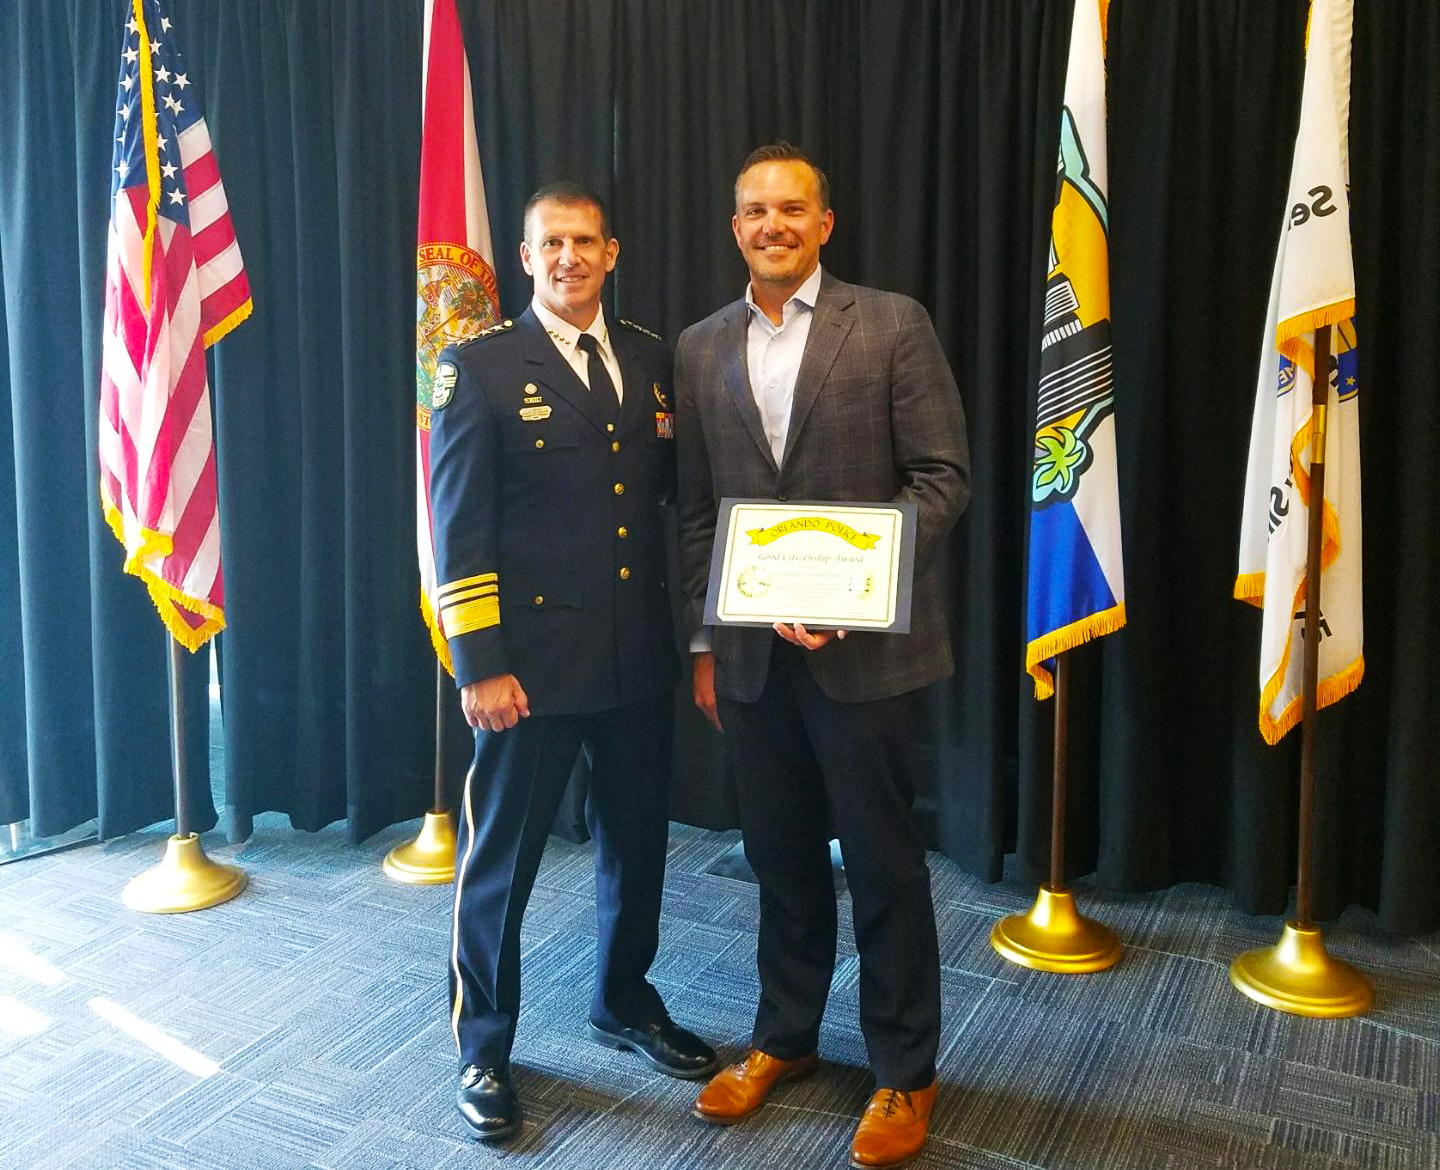 FreshPoint Central Florida Preston Fletcher receiving the Good Citizenship Award from The Orlando Police Department.